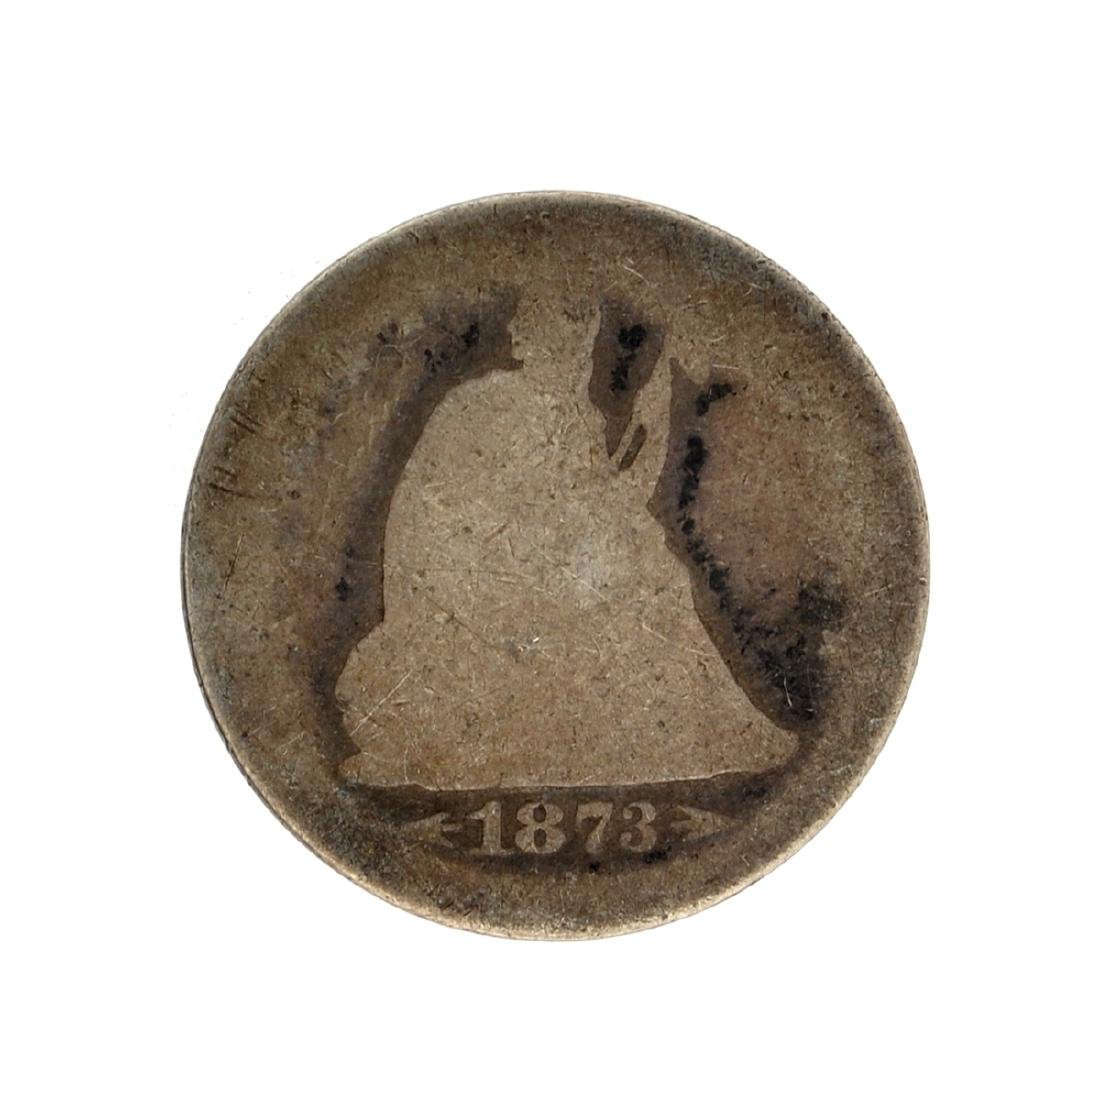 1873 Liberty Seated Arrows At Date Quarter Dollar Coin